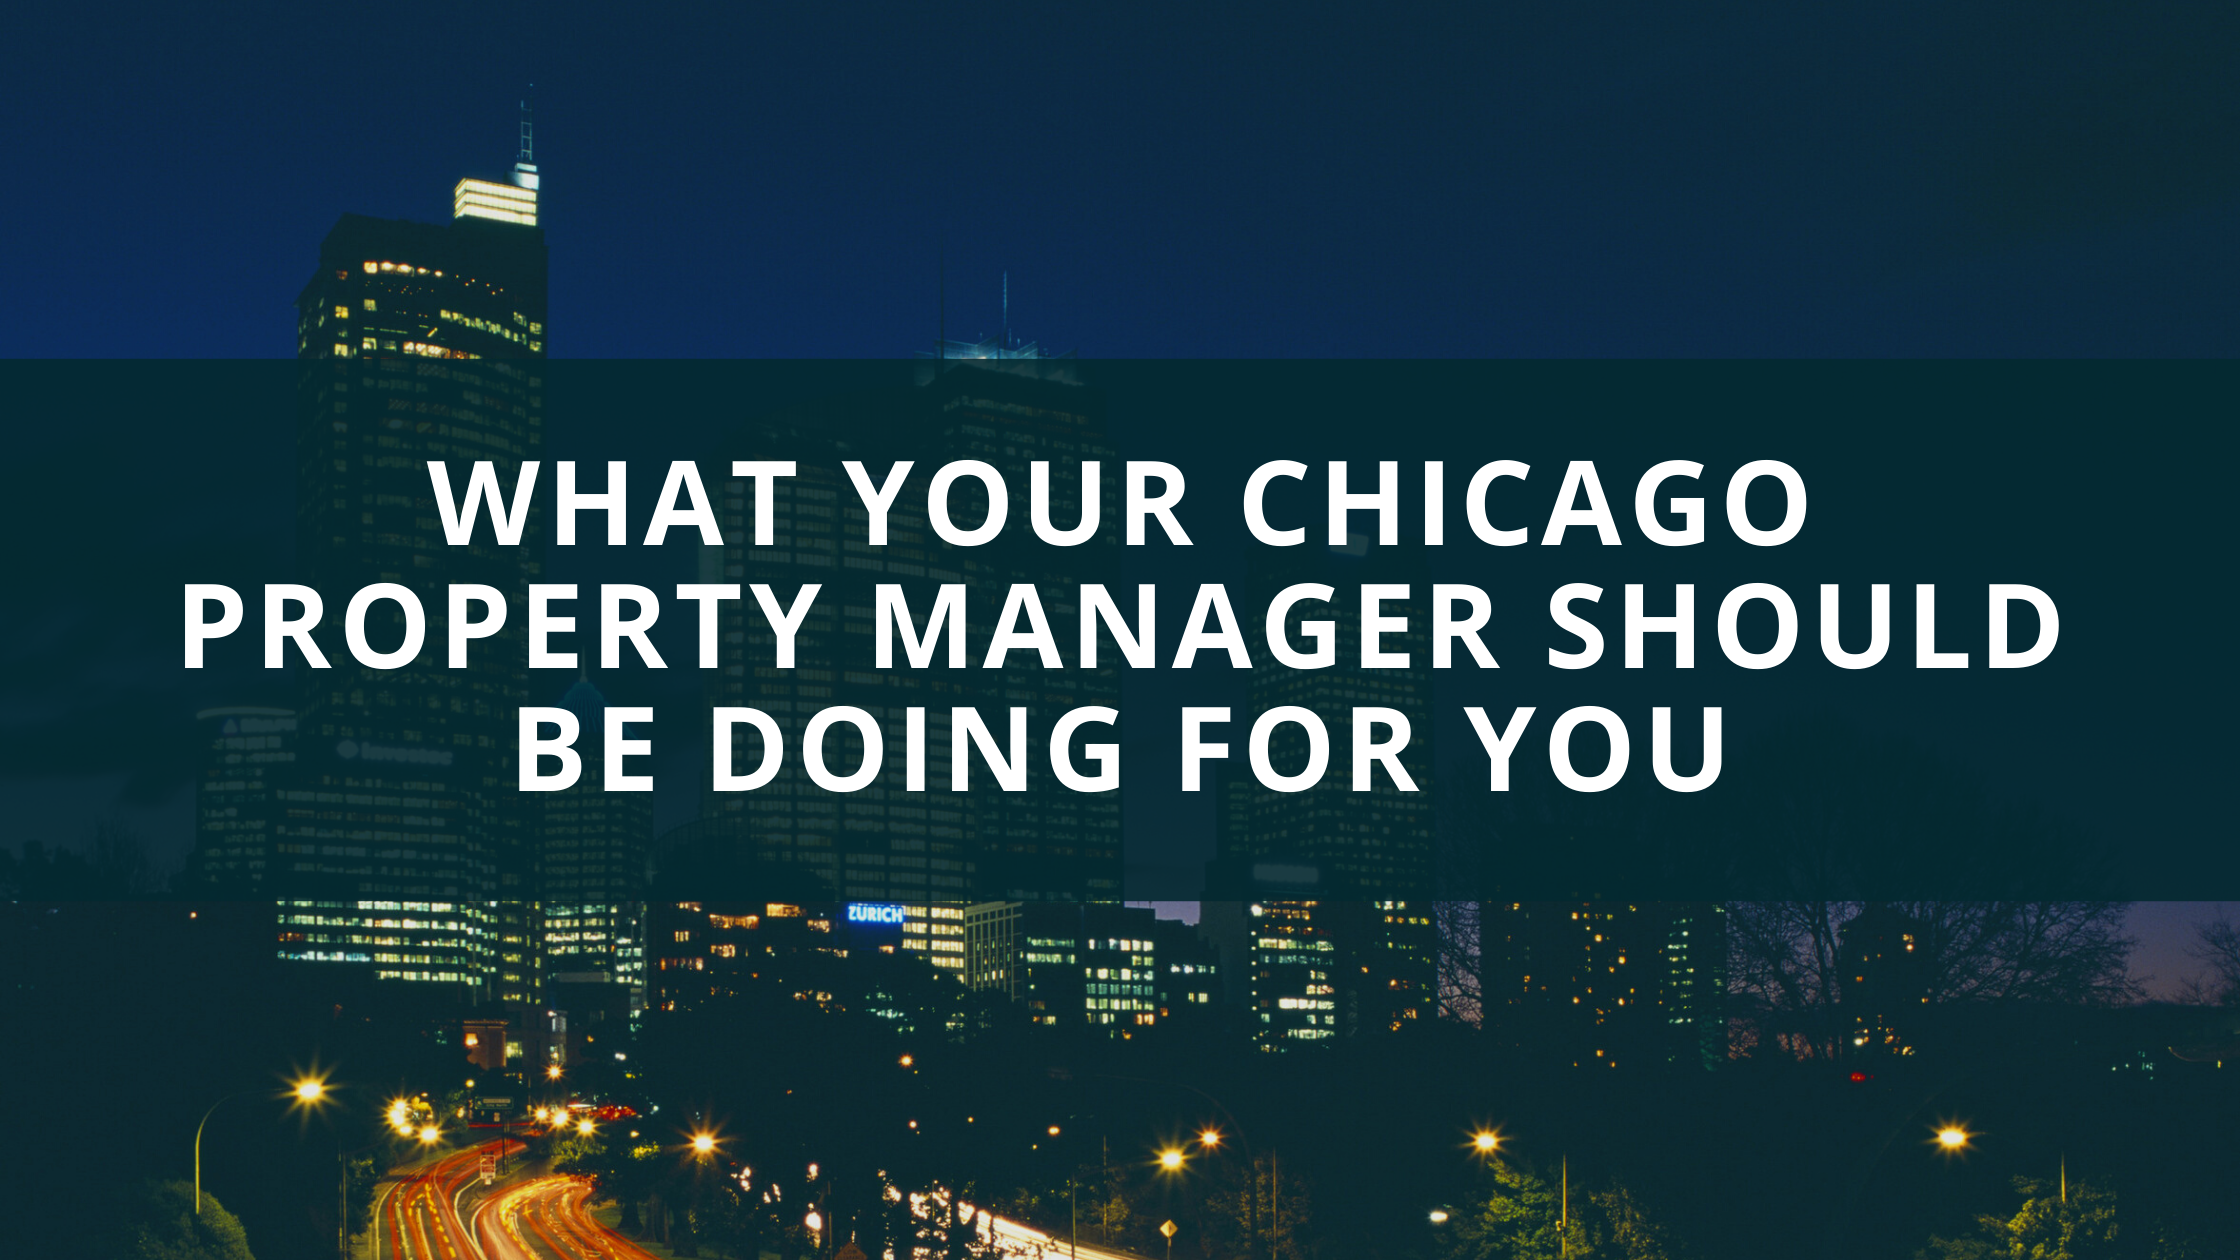 What Your Chicago Property Manager Should Be Doing for You